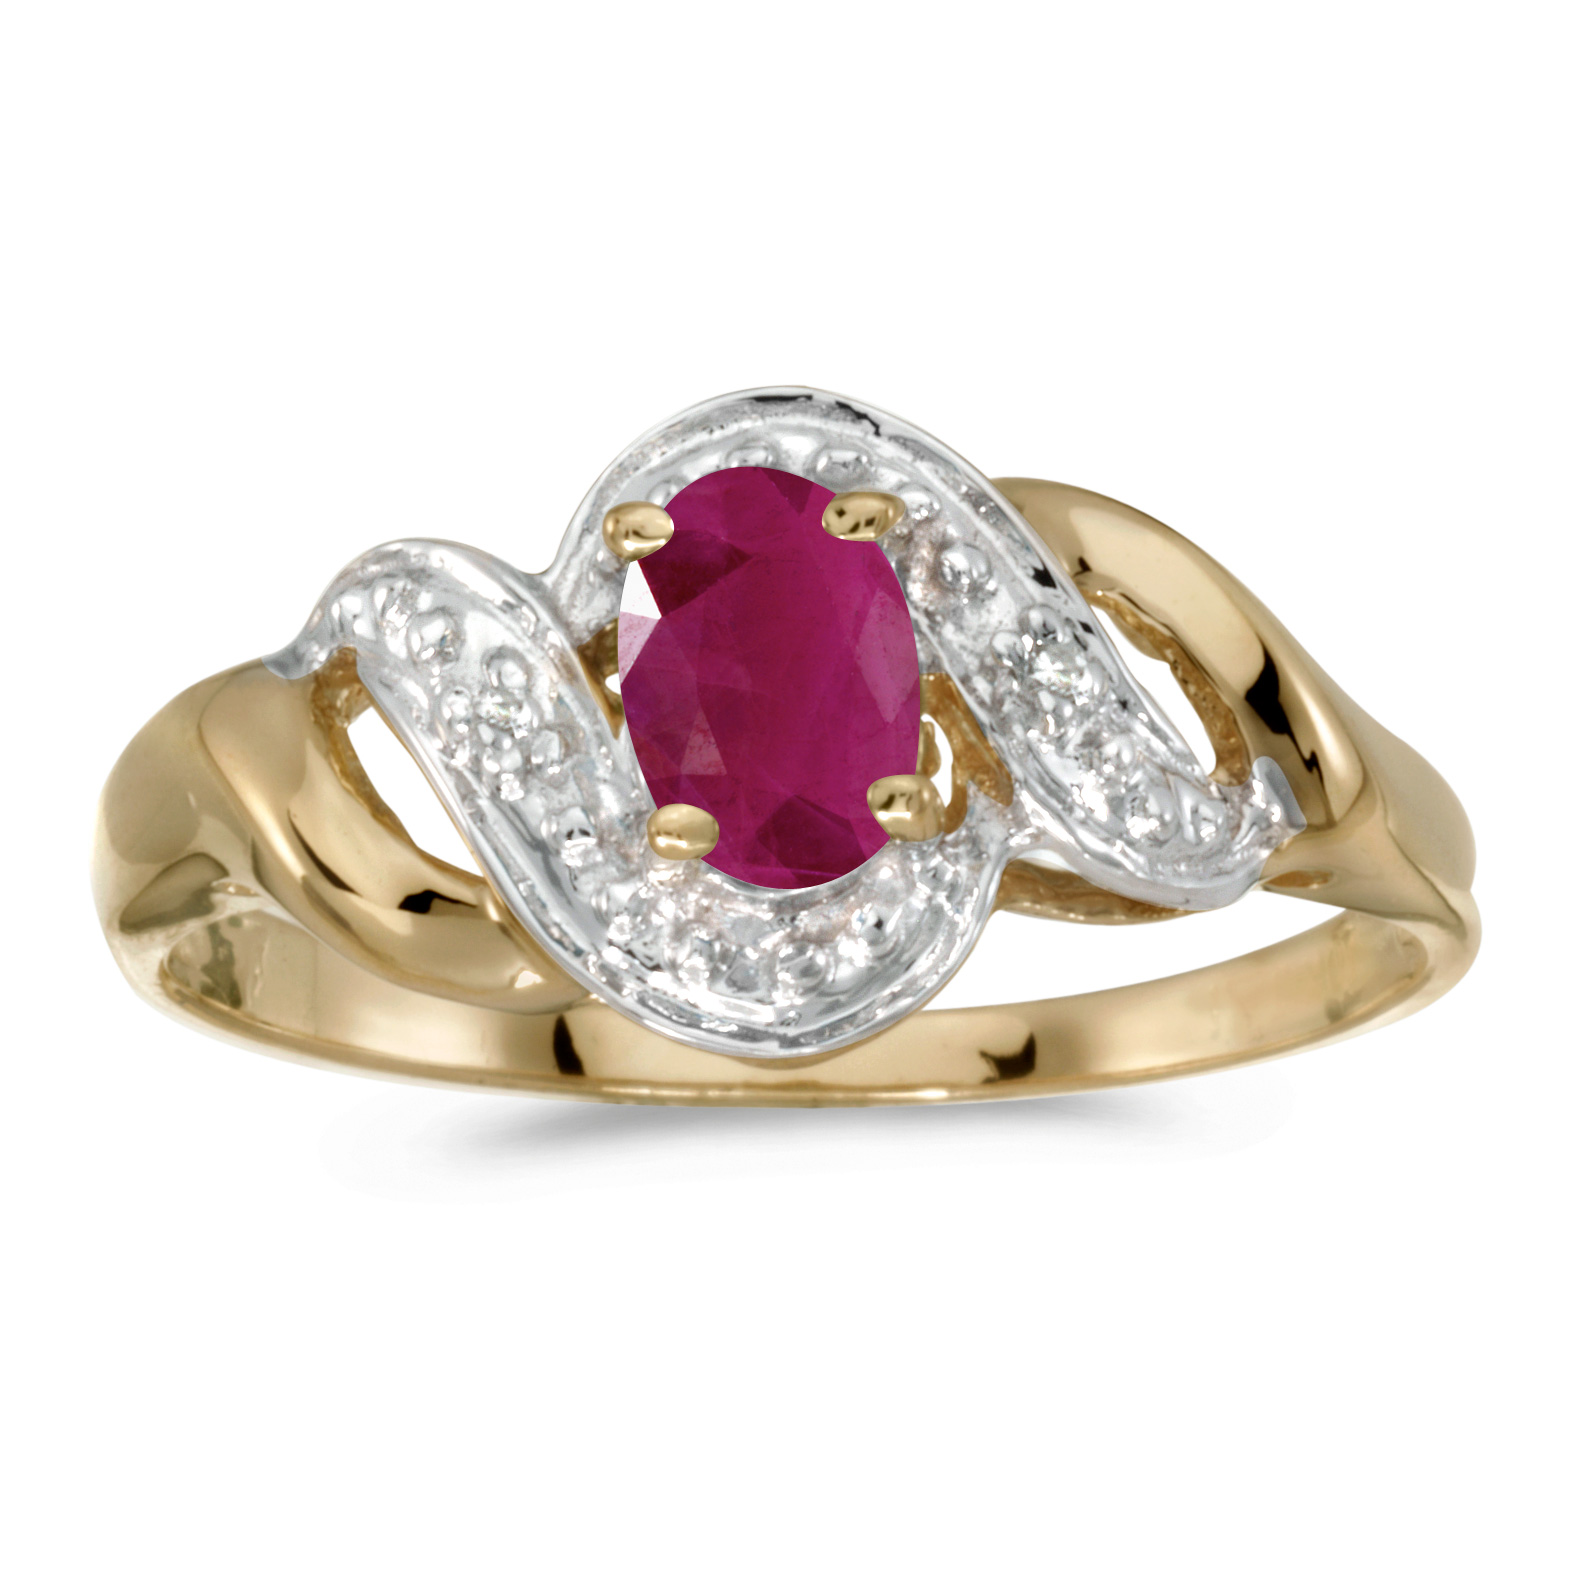 10k Yellow Gold Oval Ruby And Diamond Swirl Ring by